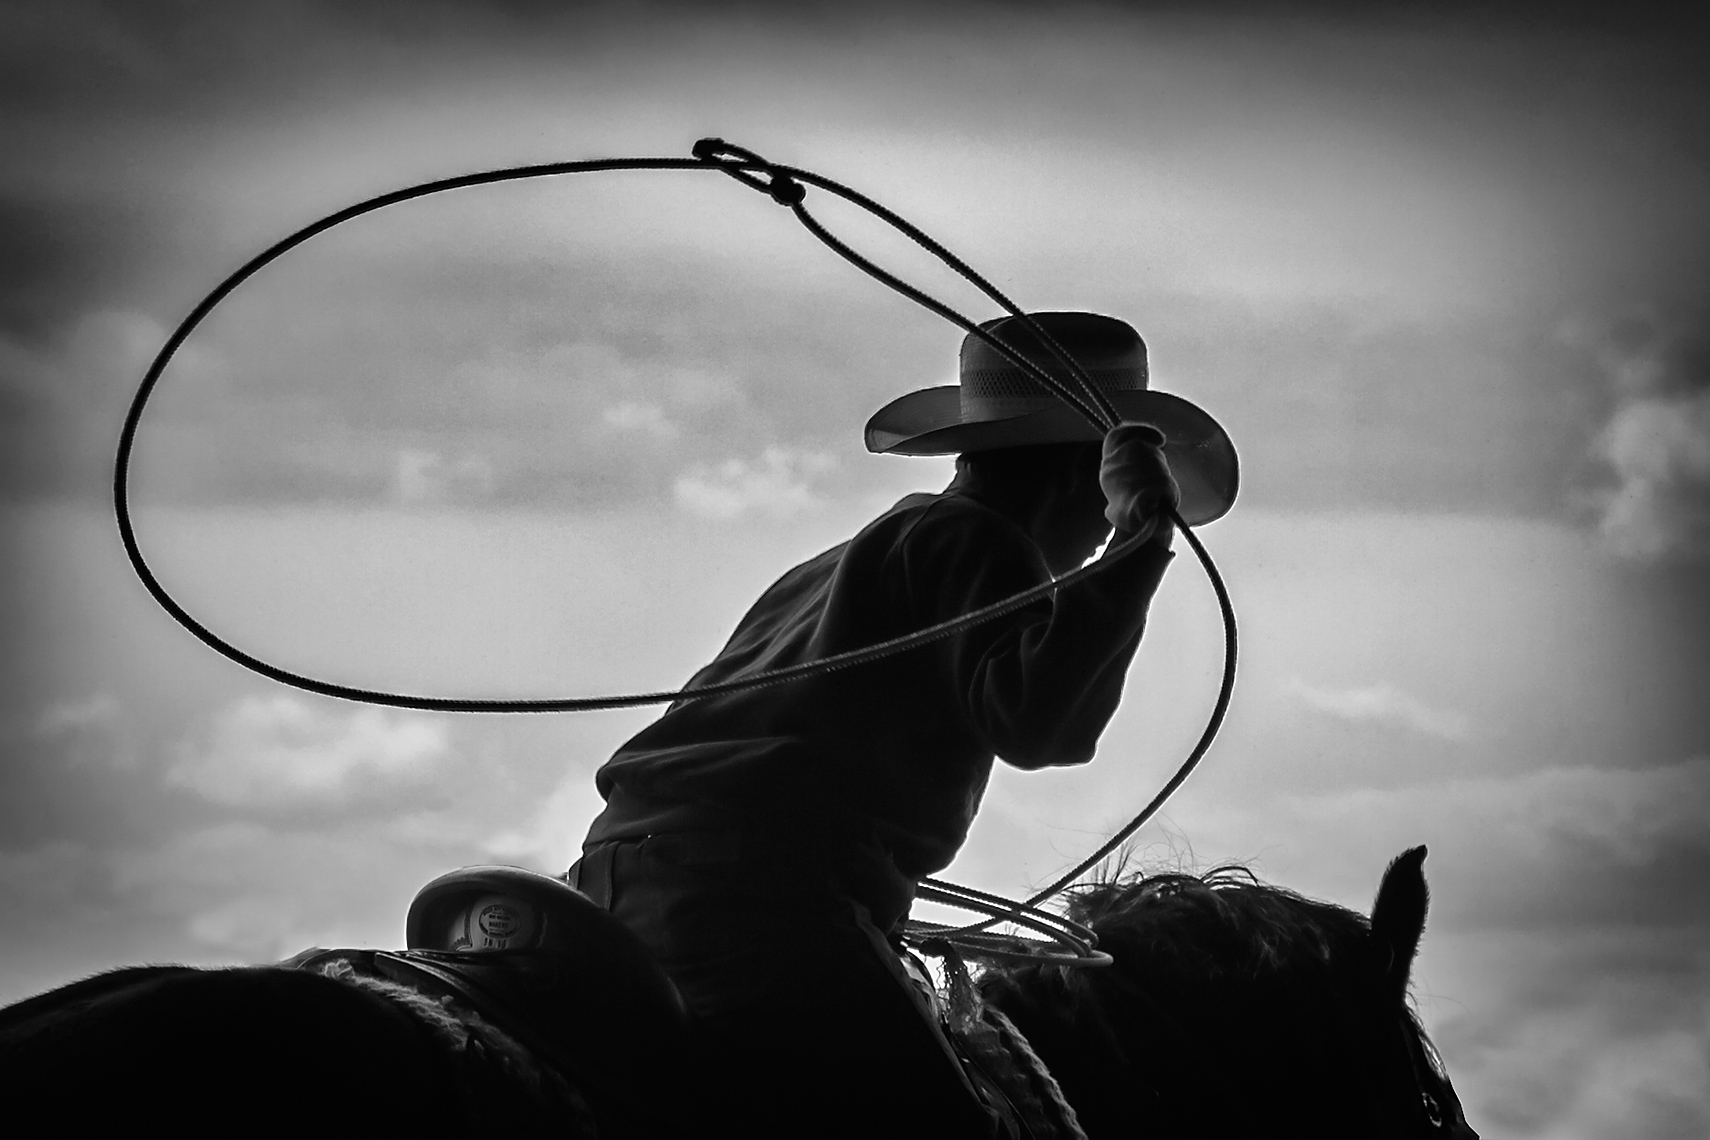 Cowboy Cattle Roping, Wilsal Montana by Dave White Photographer